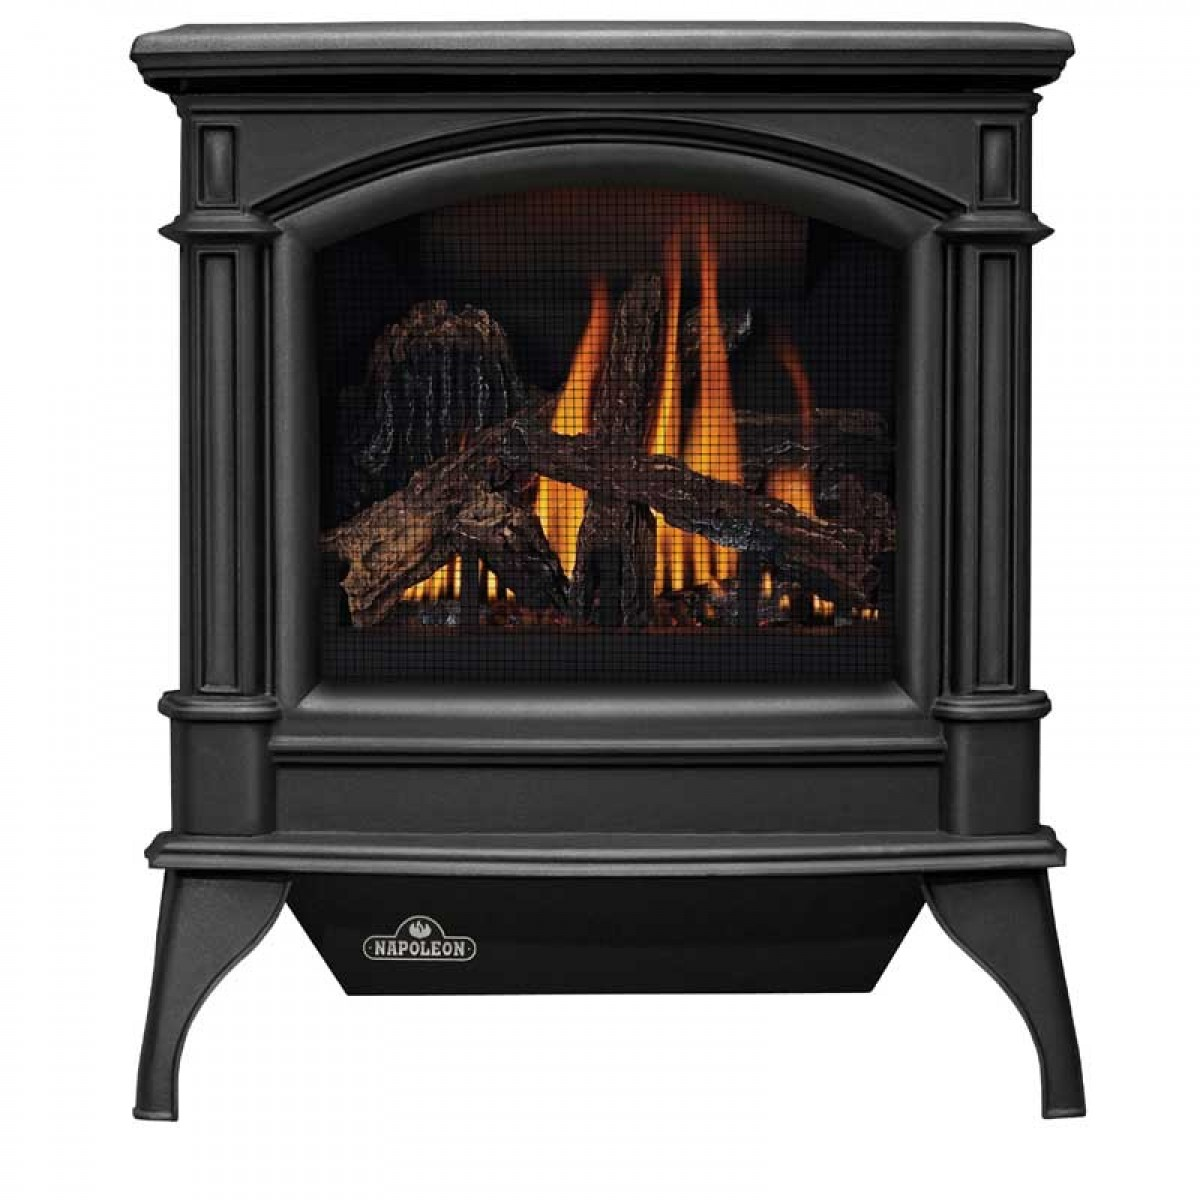 GVFS60-1P Cast Iron Stove Body - Painted Metallic Black -